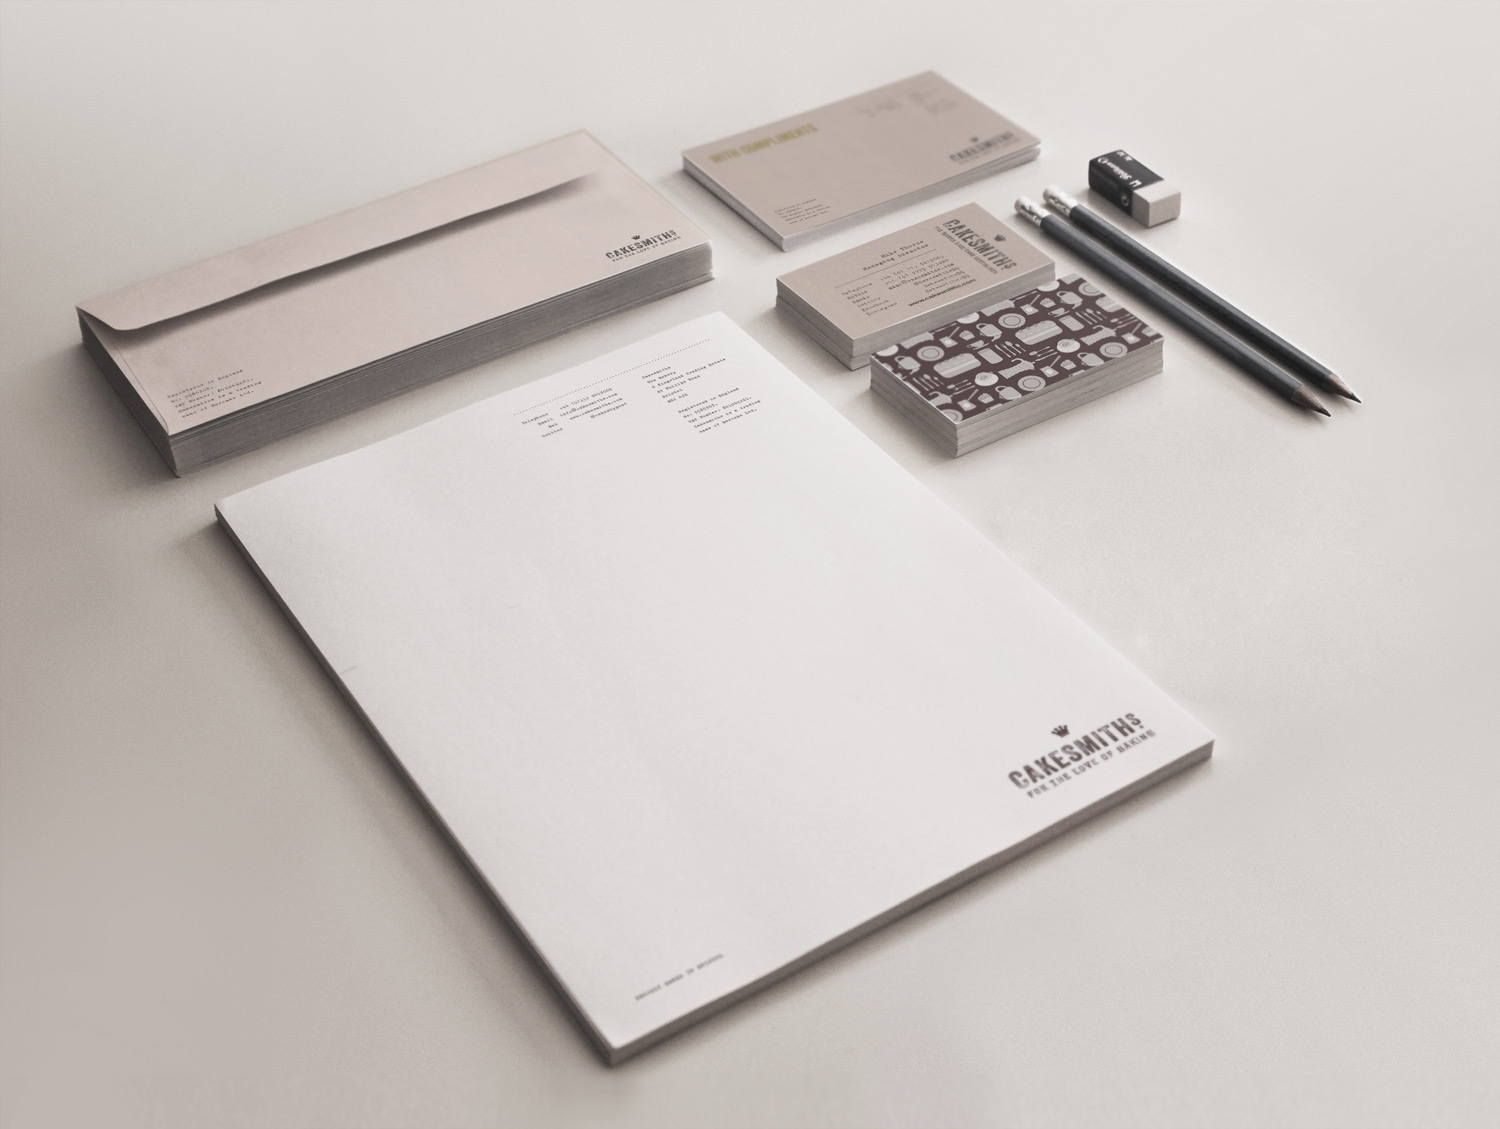 cakesmiths-stationary-designs-by-get-it-sorted.jpg